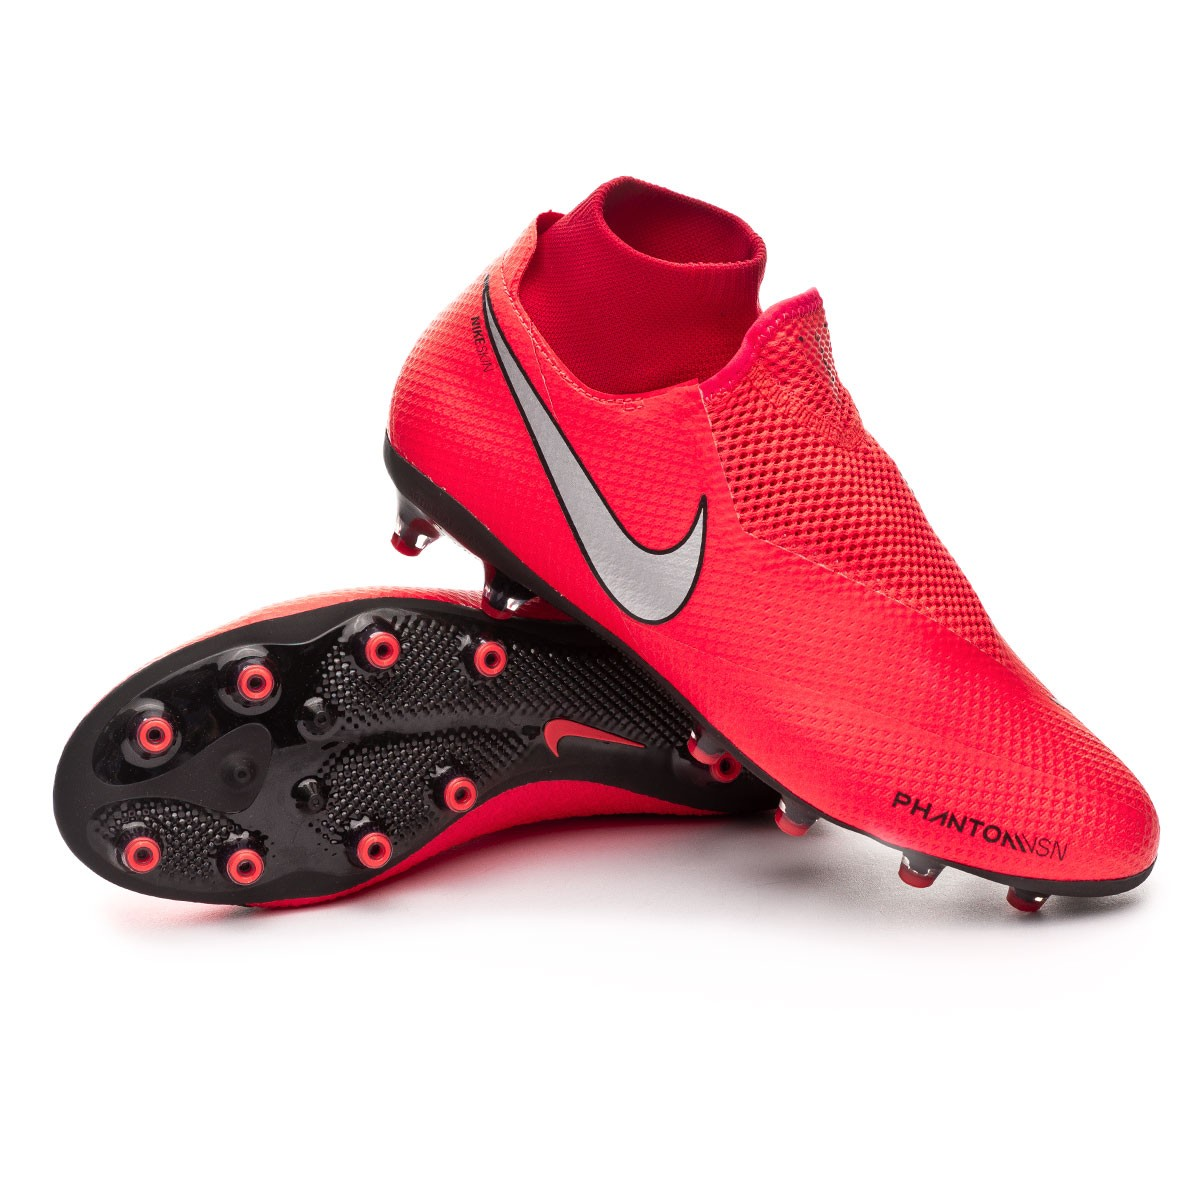 b892d2138 Football Boots Nike Phantom Vision Pro DF AG-Pro Bright crimson ...